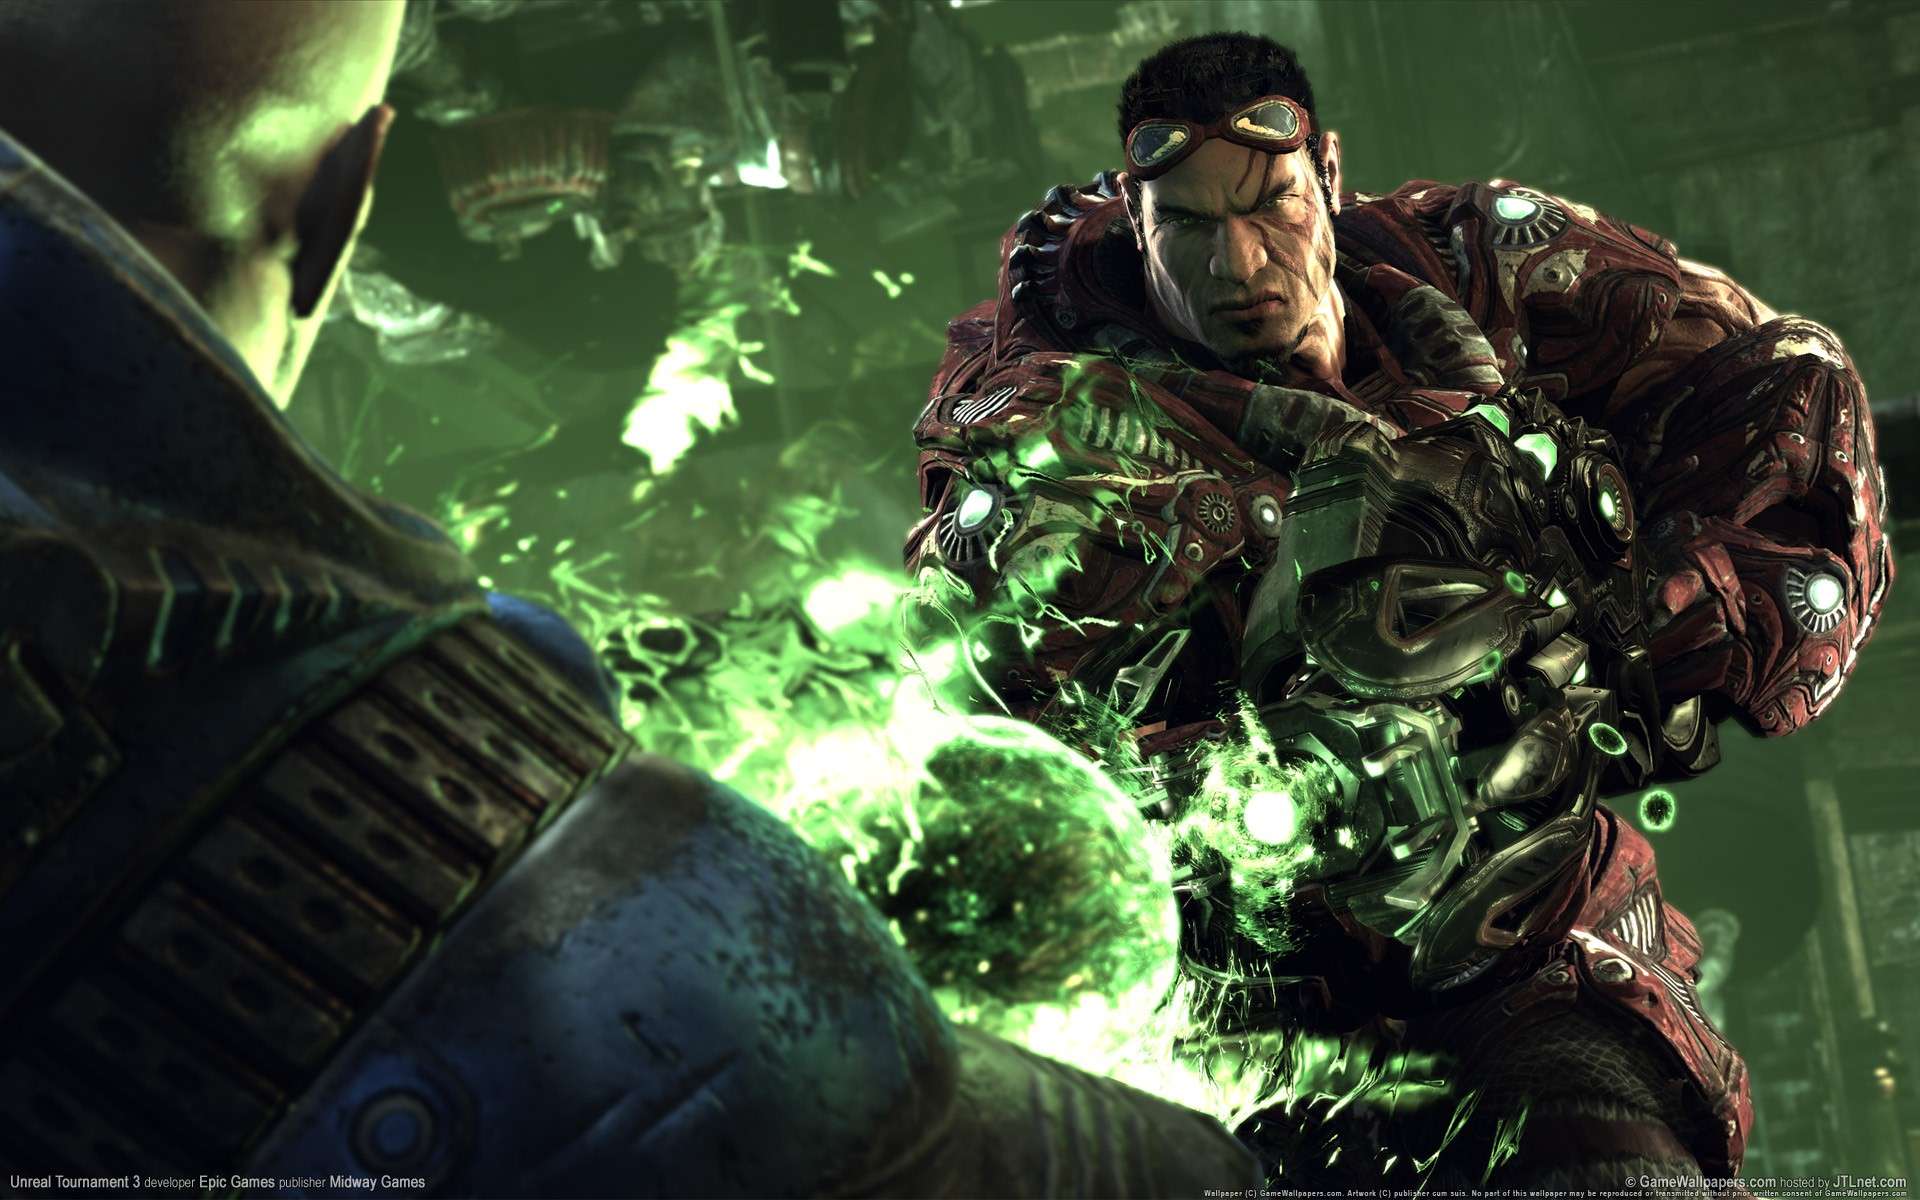 video_game_wallpapers_technobuzz_net_30